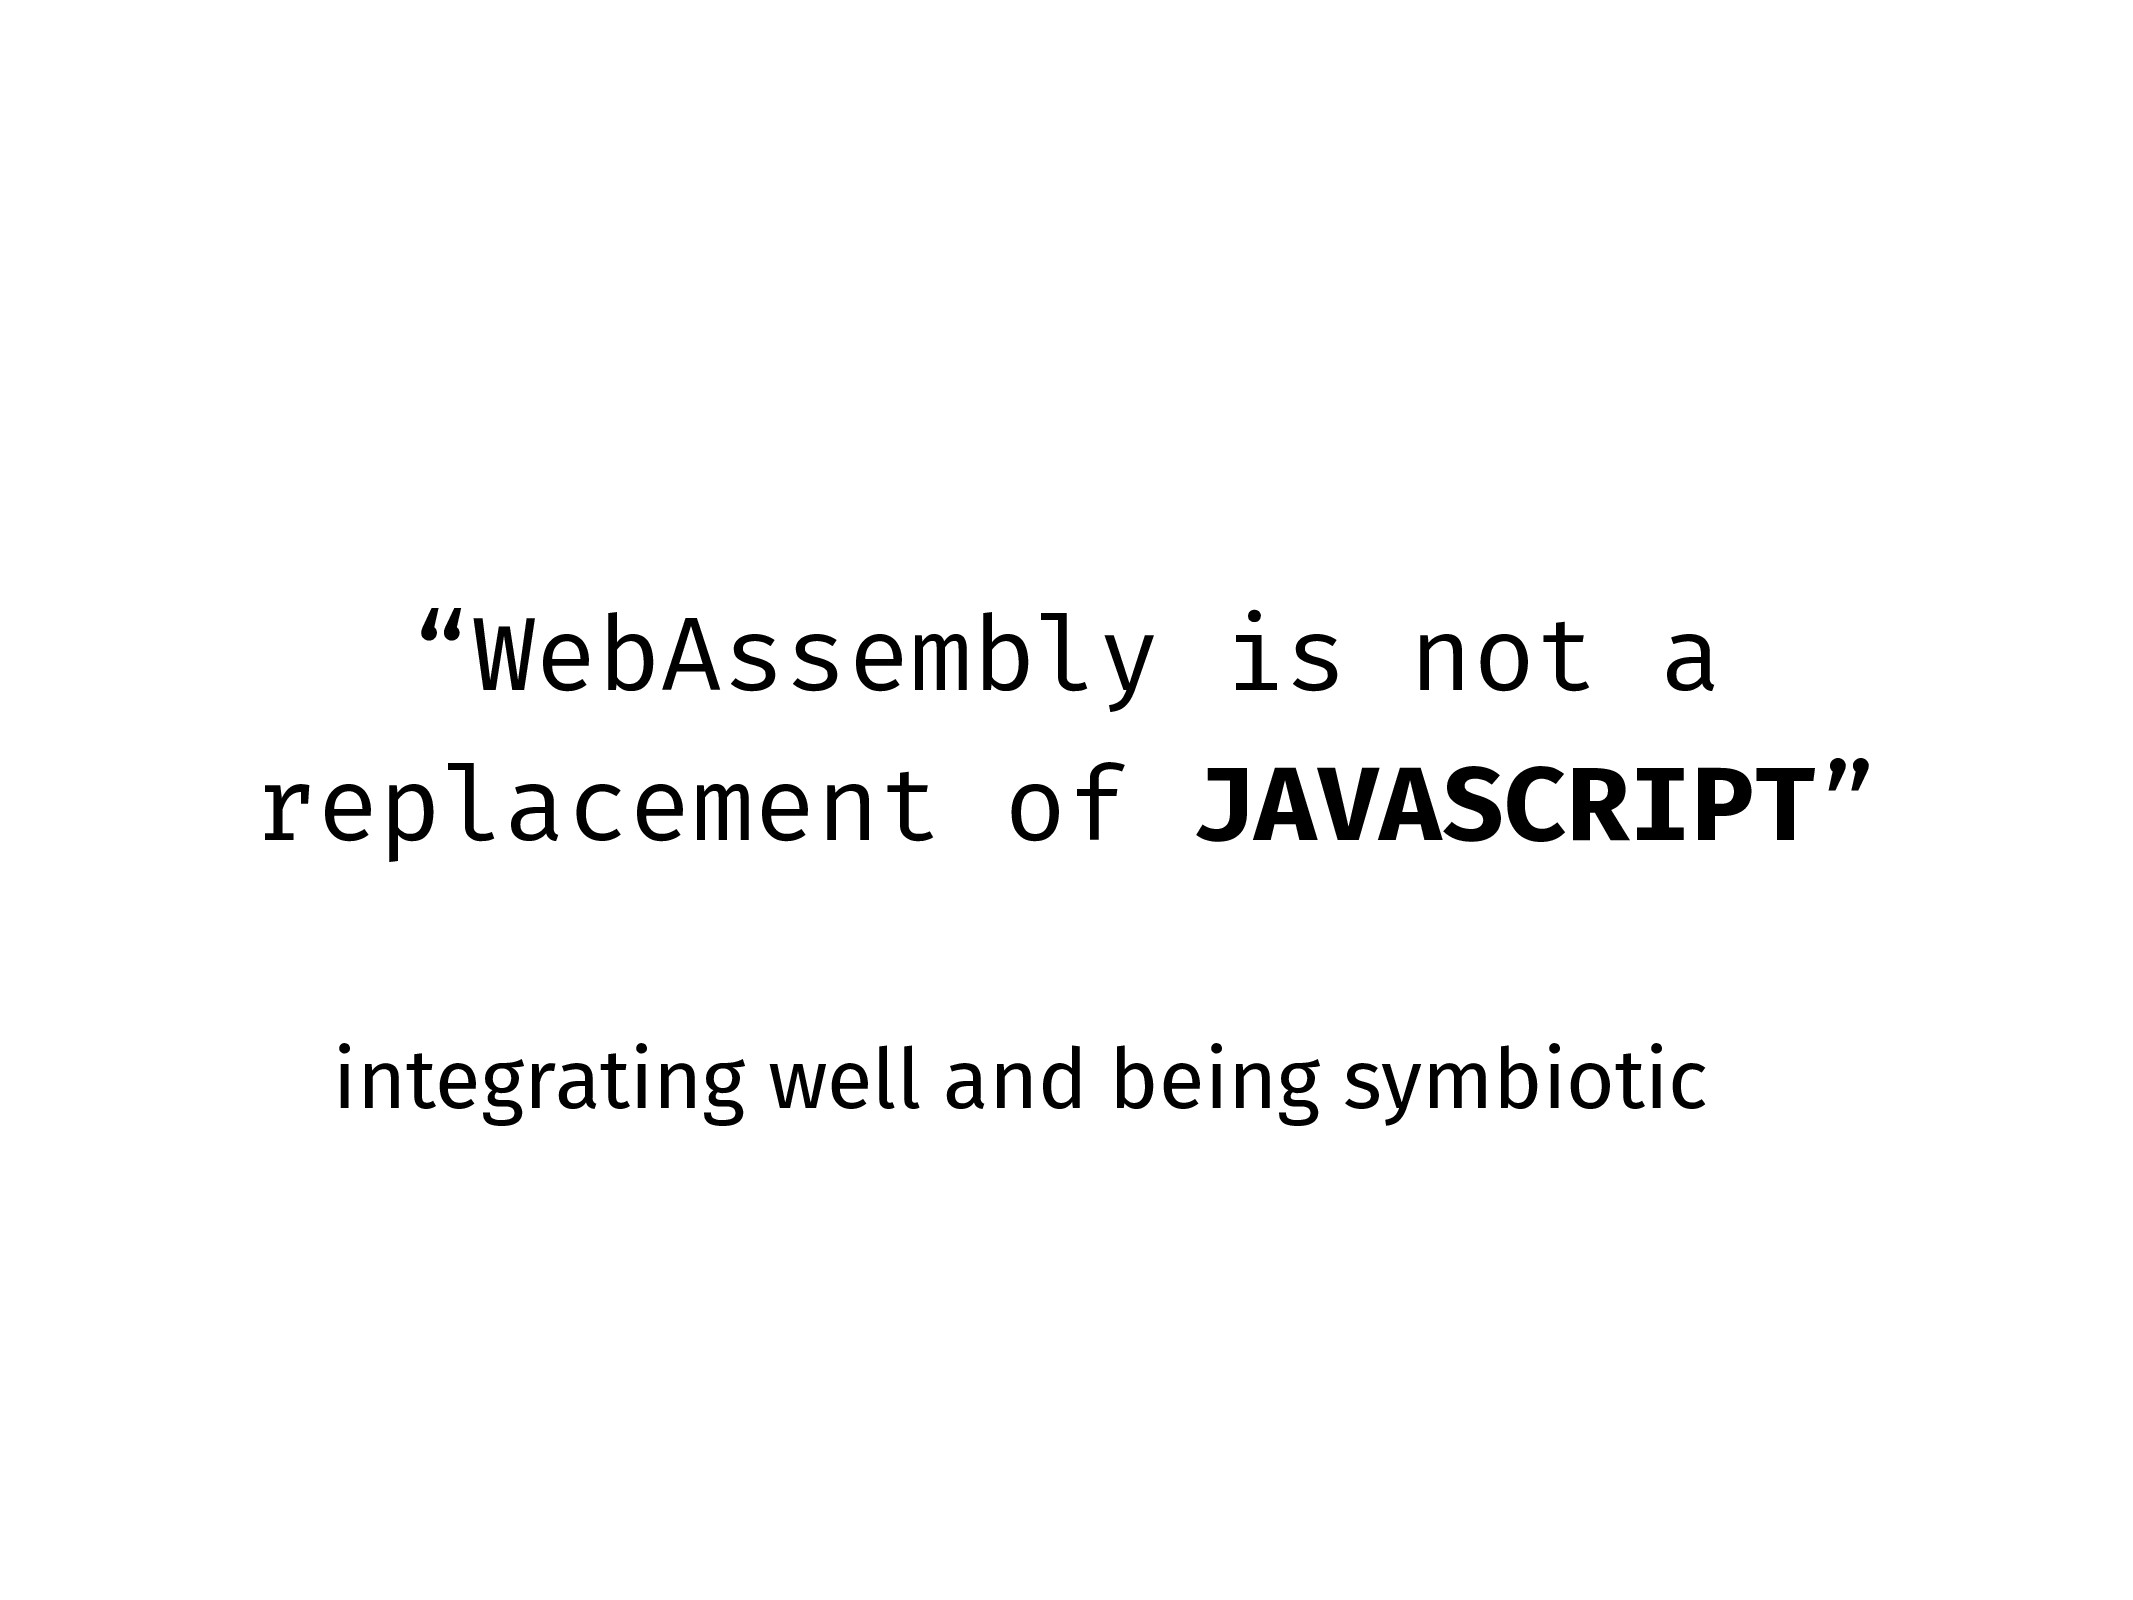 """WebAssembly is not a replacement of JAVASCRIPT..."